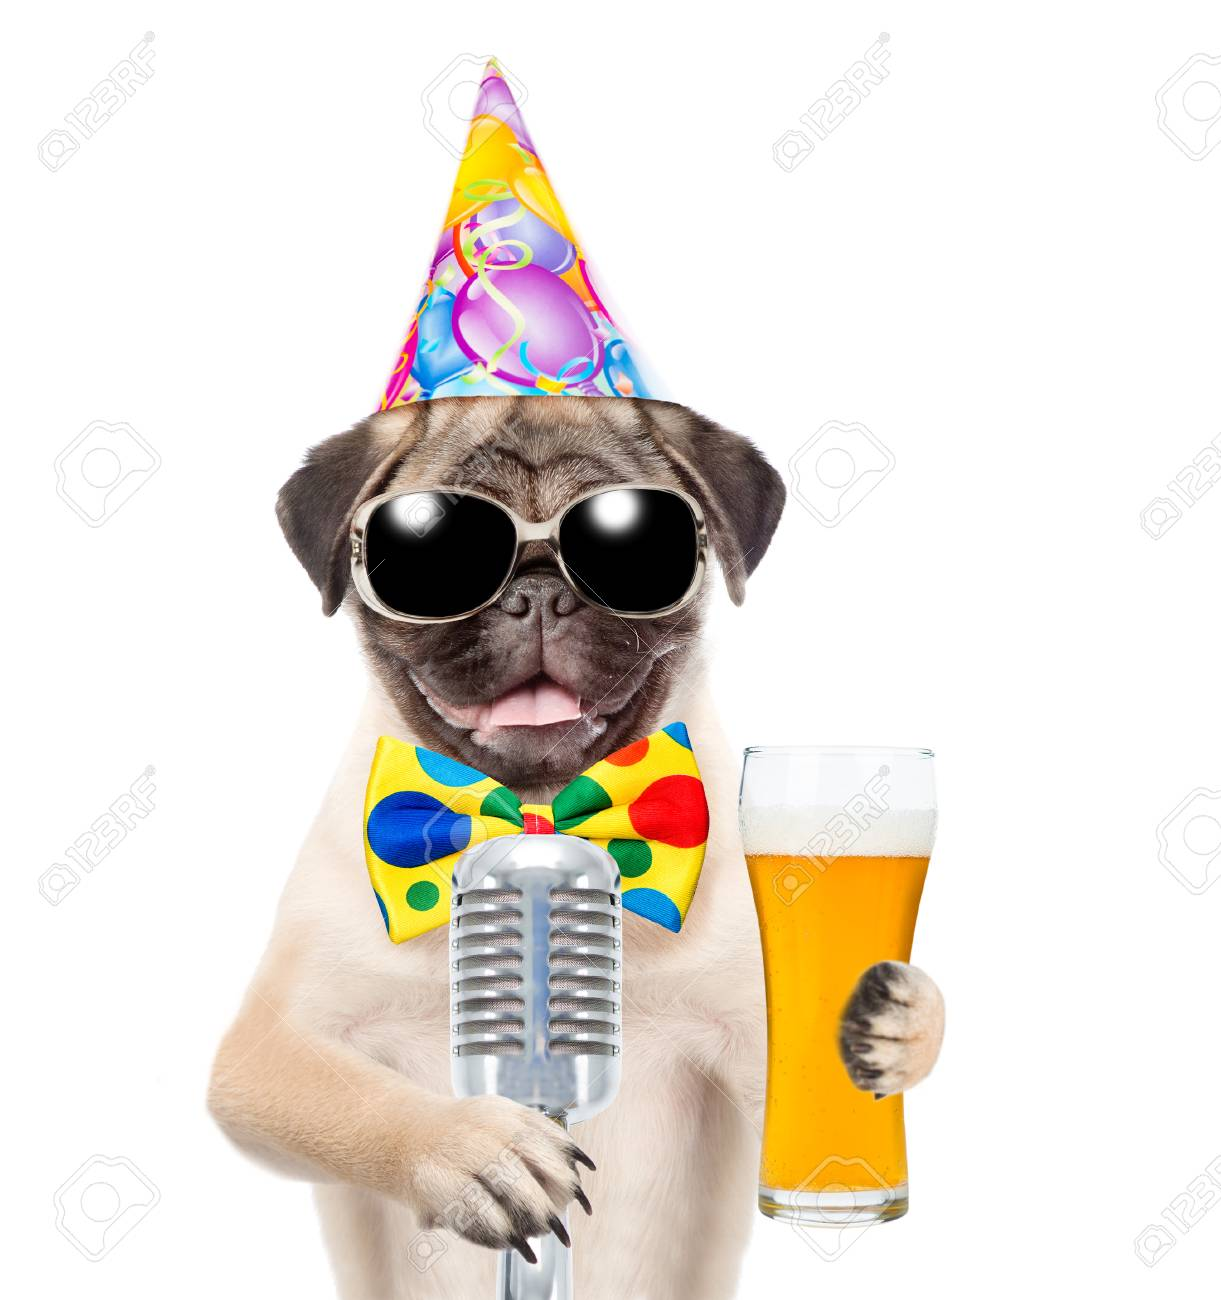 Funny Puppy In Birthday Hat And Sunglasses Holding Light Beer Retro Microphone Isolated On